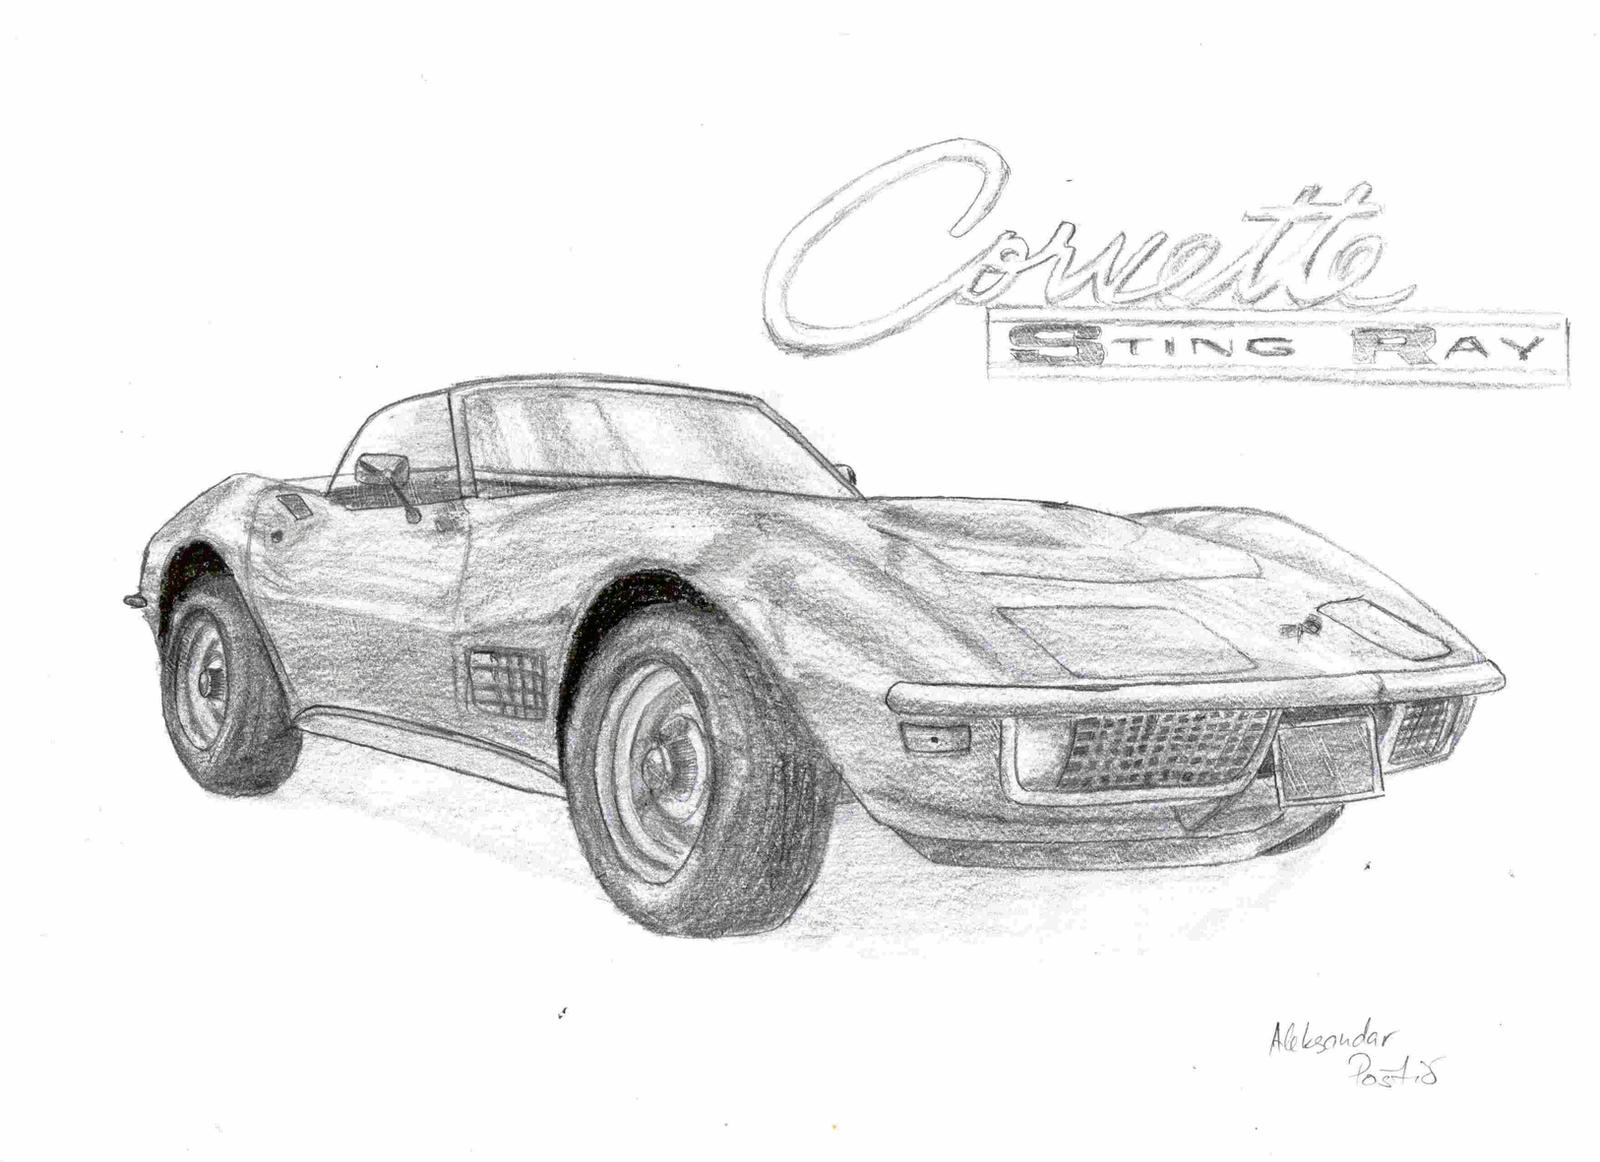 3081777 1957clutch Spring Lower Retaining Clip Hairpin moreover Color Pages Of Teapots together with Corvette Z06 74847682 likewise Beautiful Corvette Coloring Pages Printable Ideas Triamterene Us also Chevrolet corvette custom engines program. on chevrolet corvette z06